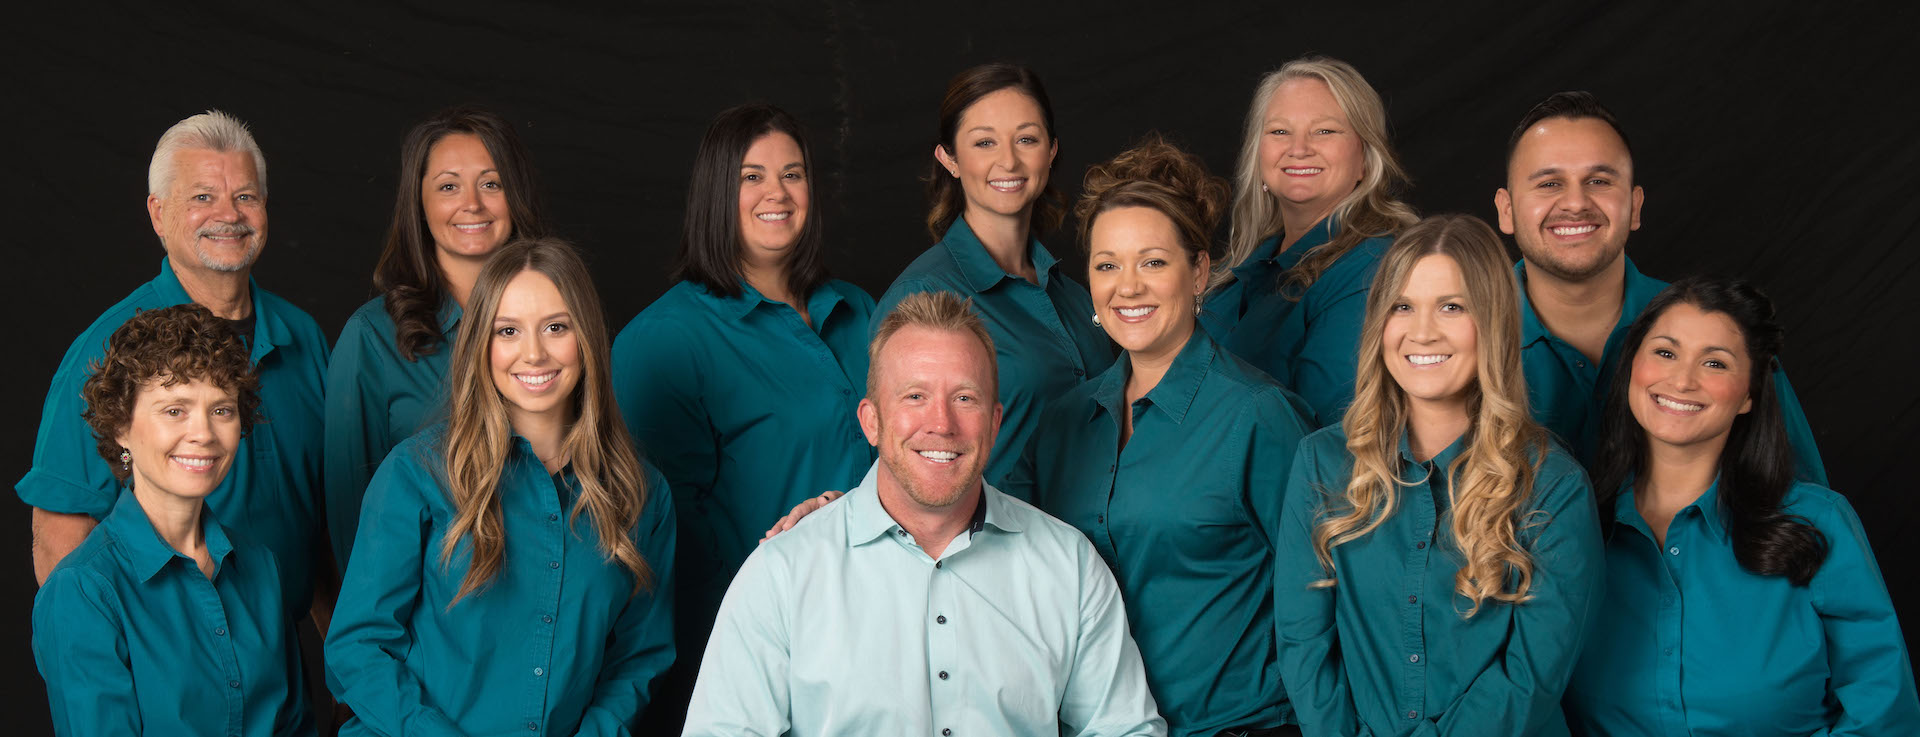 The Artisan Dental Lab team is ready to contribute to your dental health.